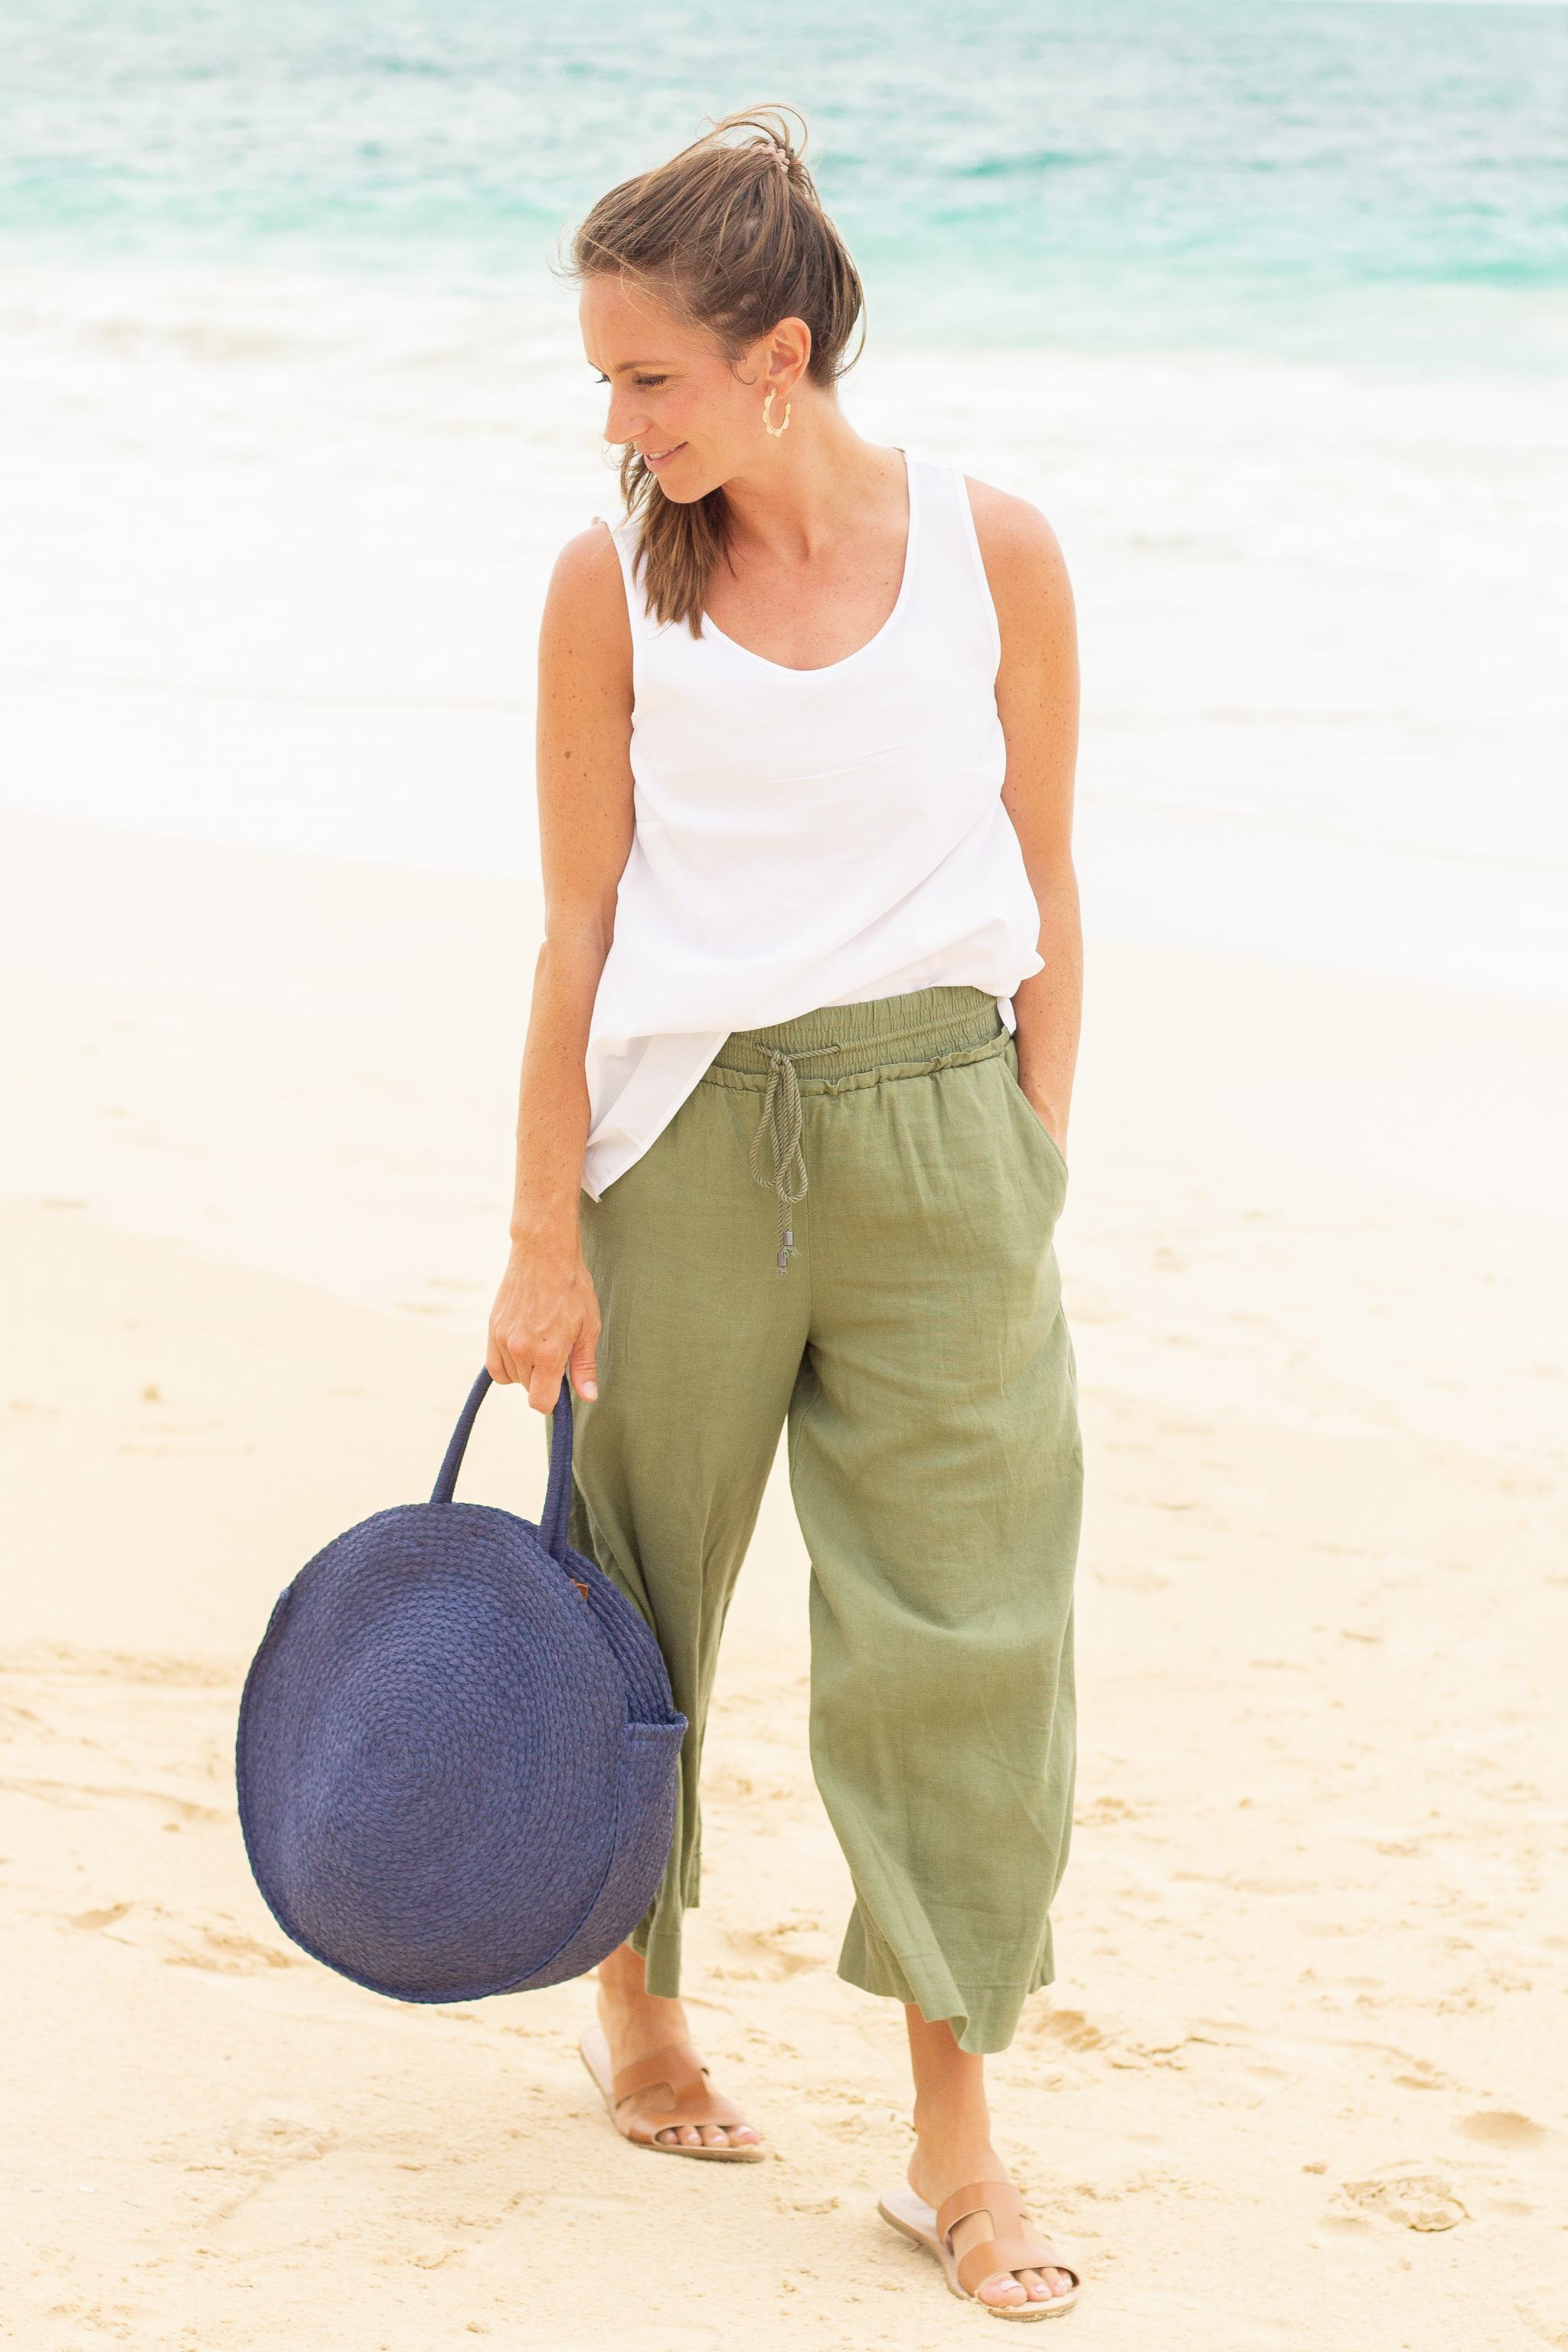 linen pants - wide leg linen pants - walmart fashion - we dress america - navy straw round tote - brown leather h band sandals - time and true - walmart style - summer style - olive green wide leg linen pants - white shell top - gold scallop hoop earrings - bellows- beach fashion - beach vacation outfit